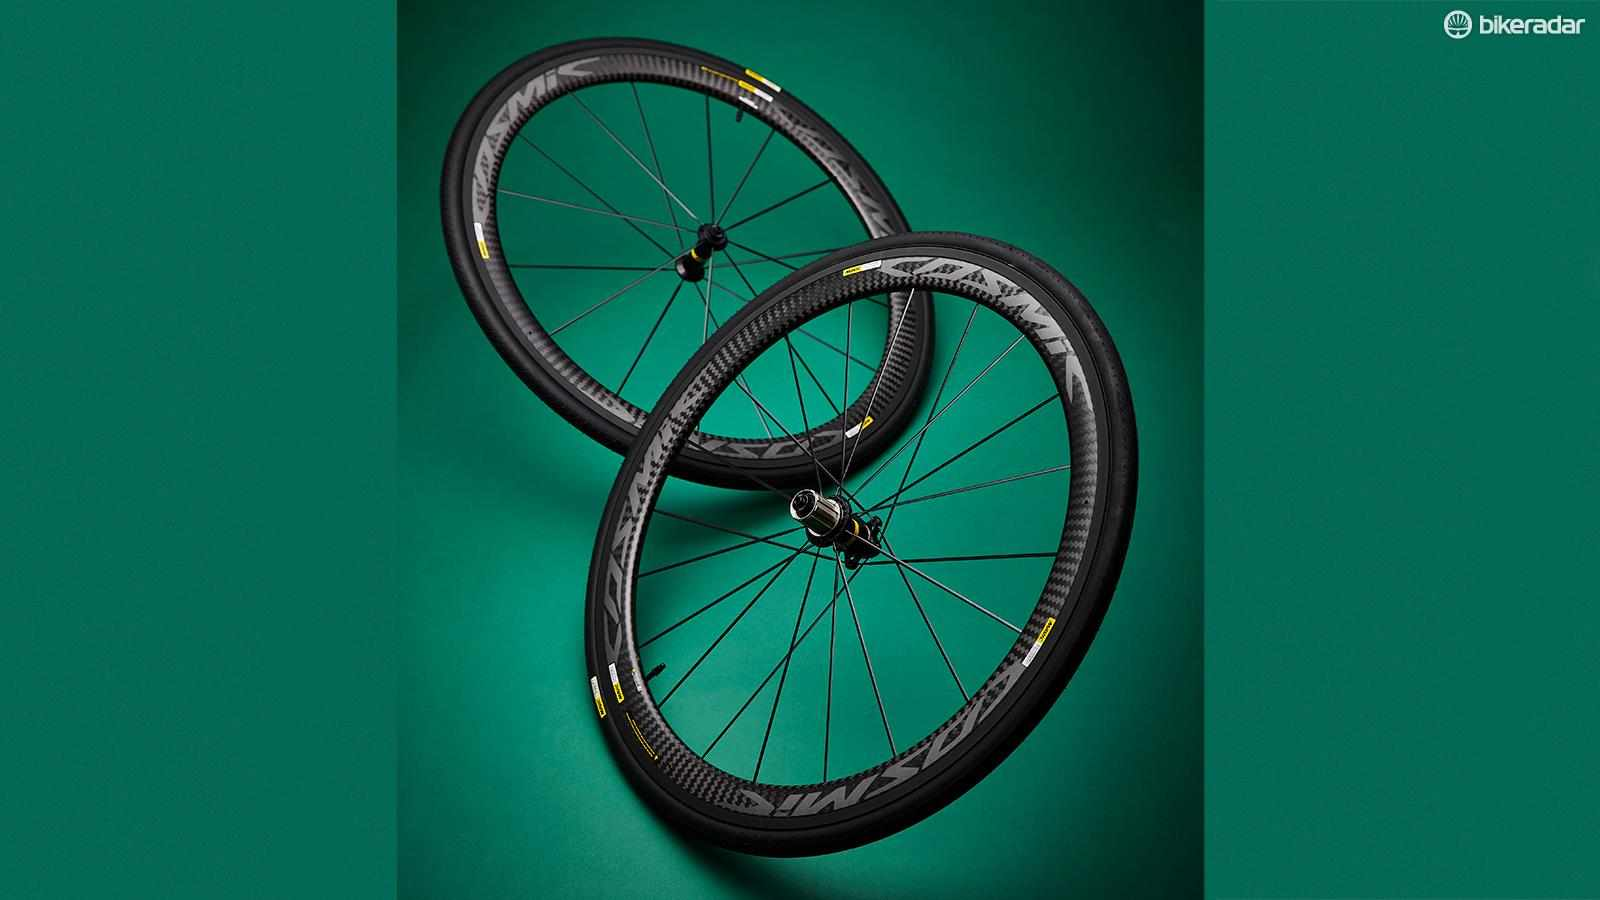 Mavic Cosmic Carbon Pro Exalith wheels